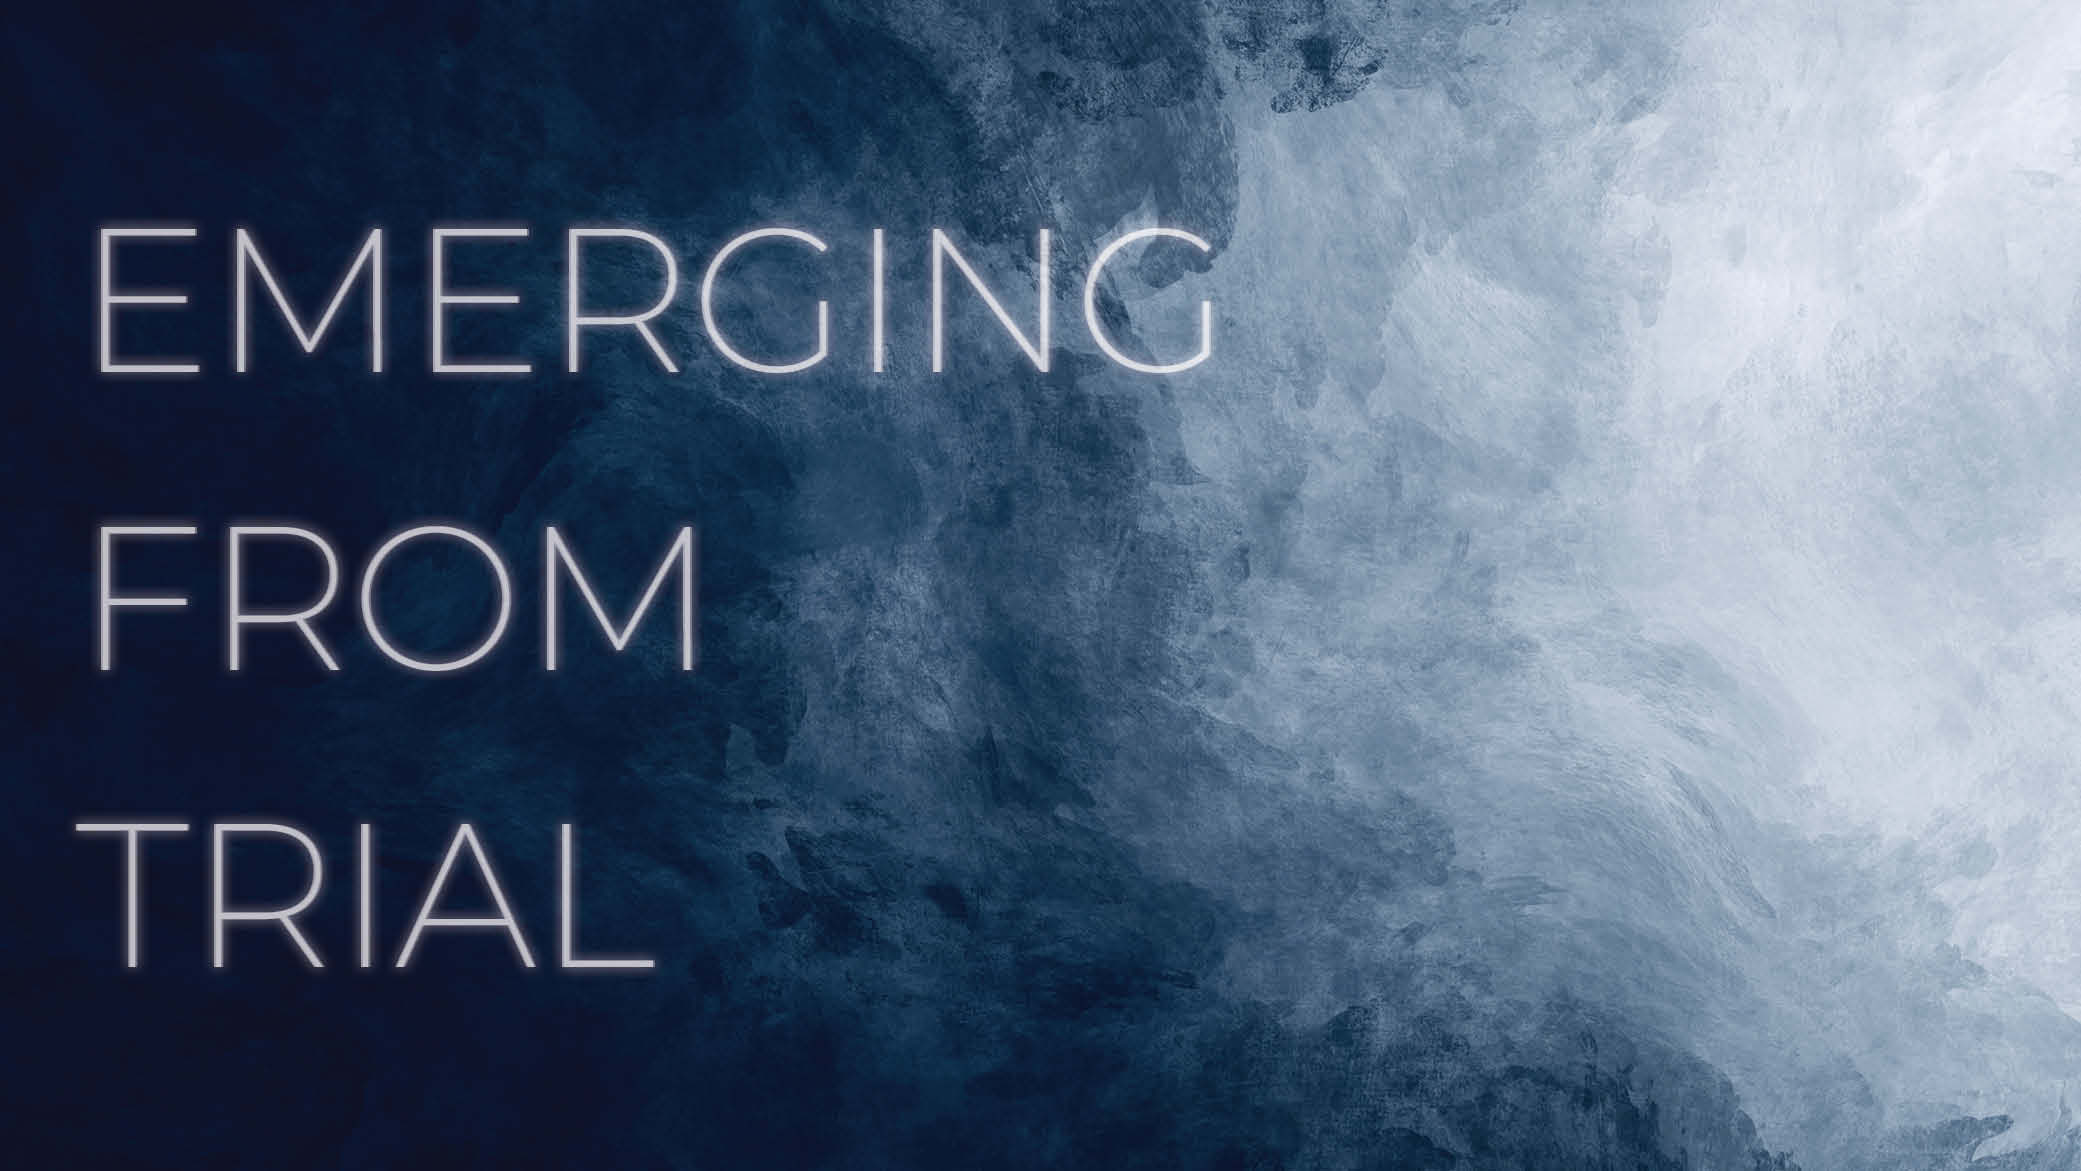 Emerging from Trial blog